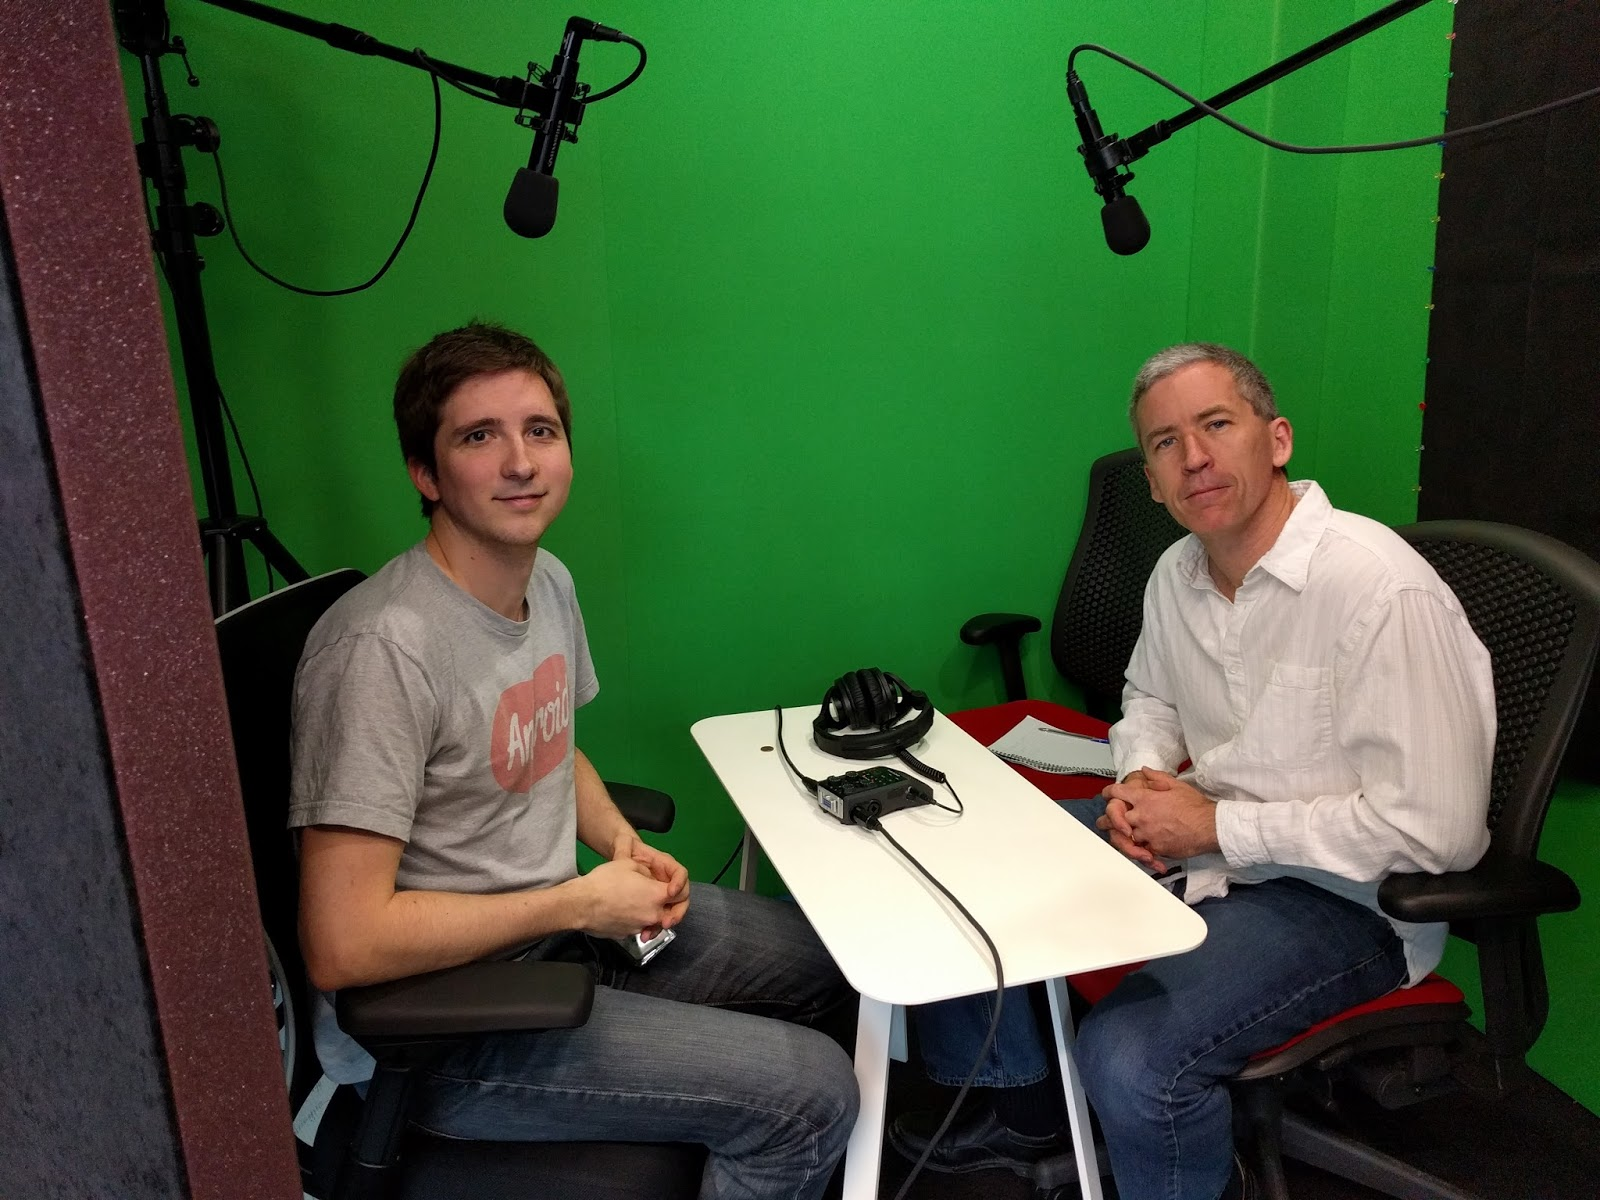 Episode 48: ExoPlayer Android Developers Backstage podcast